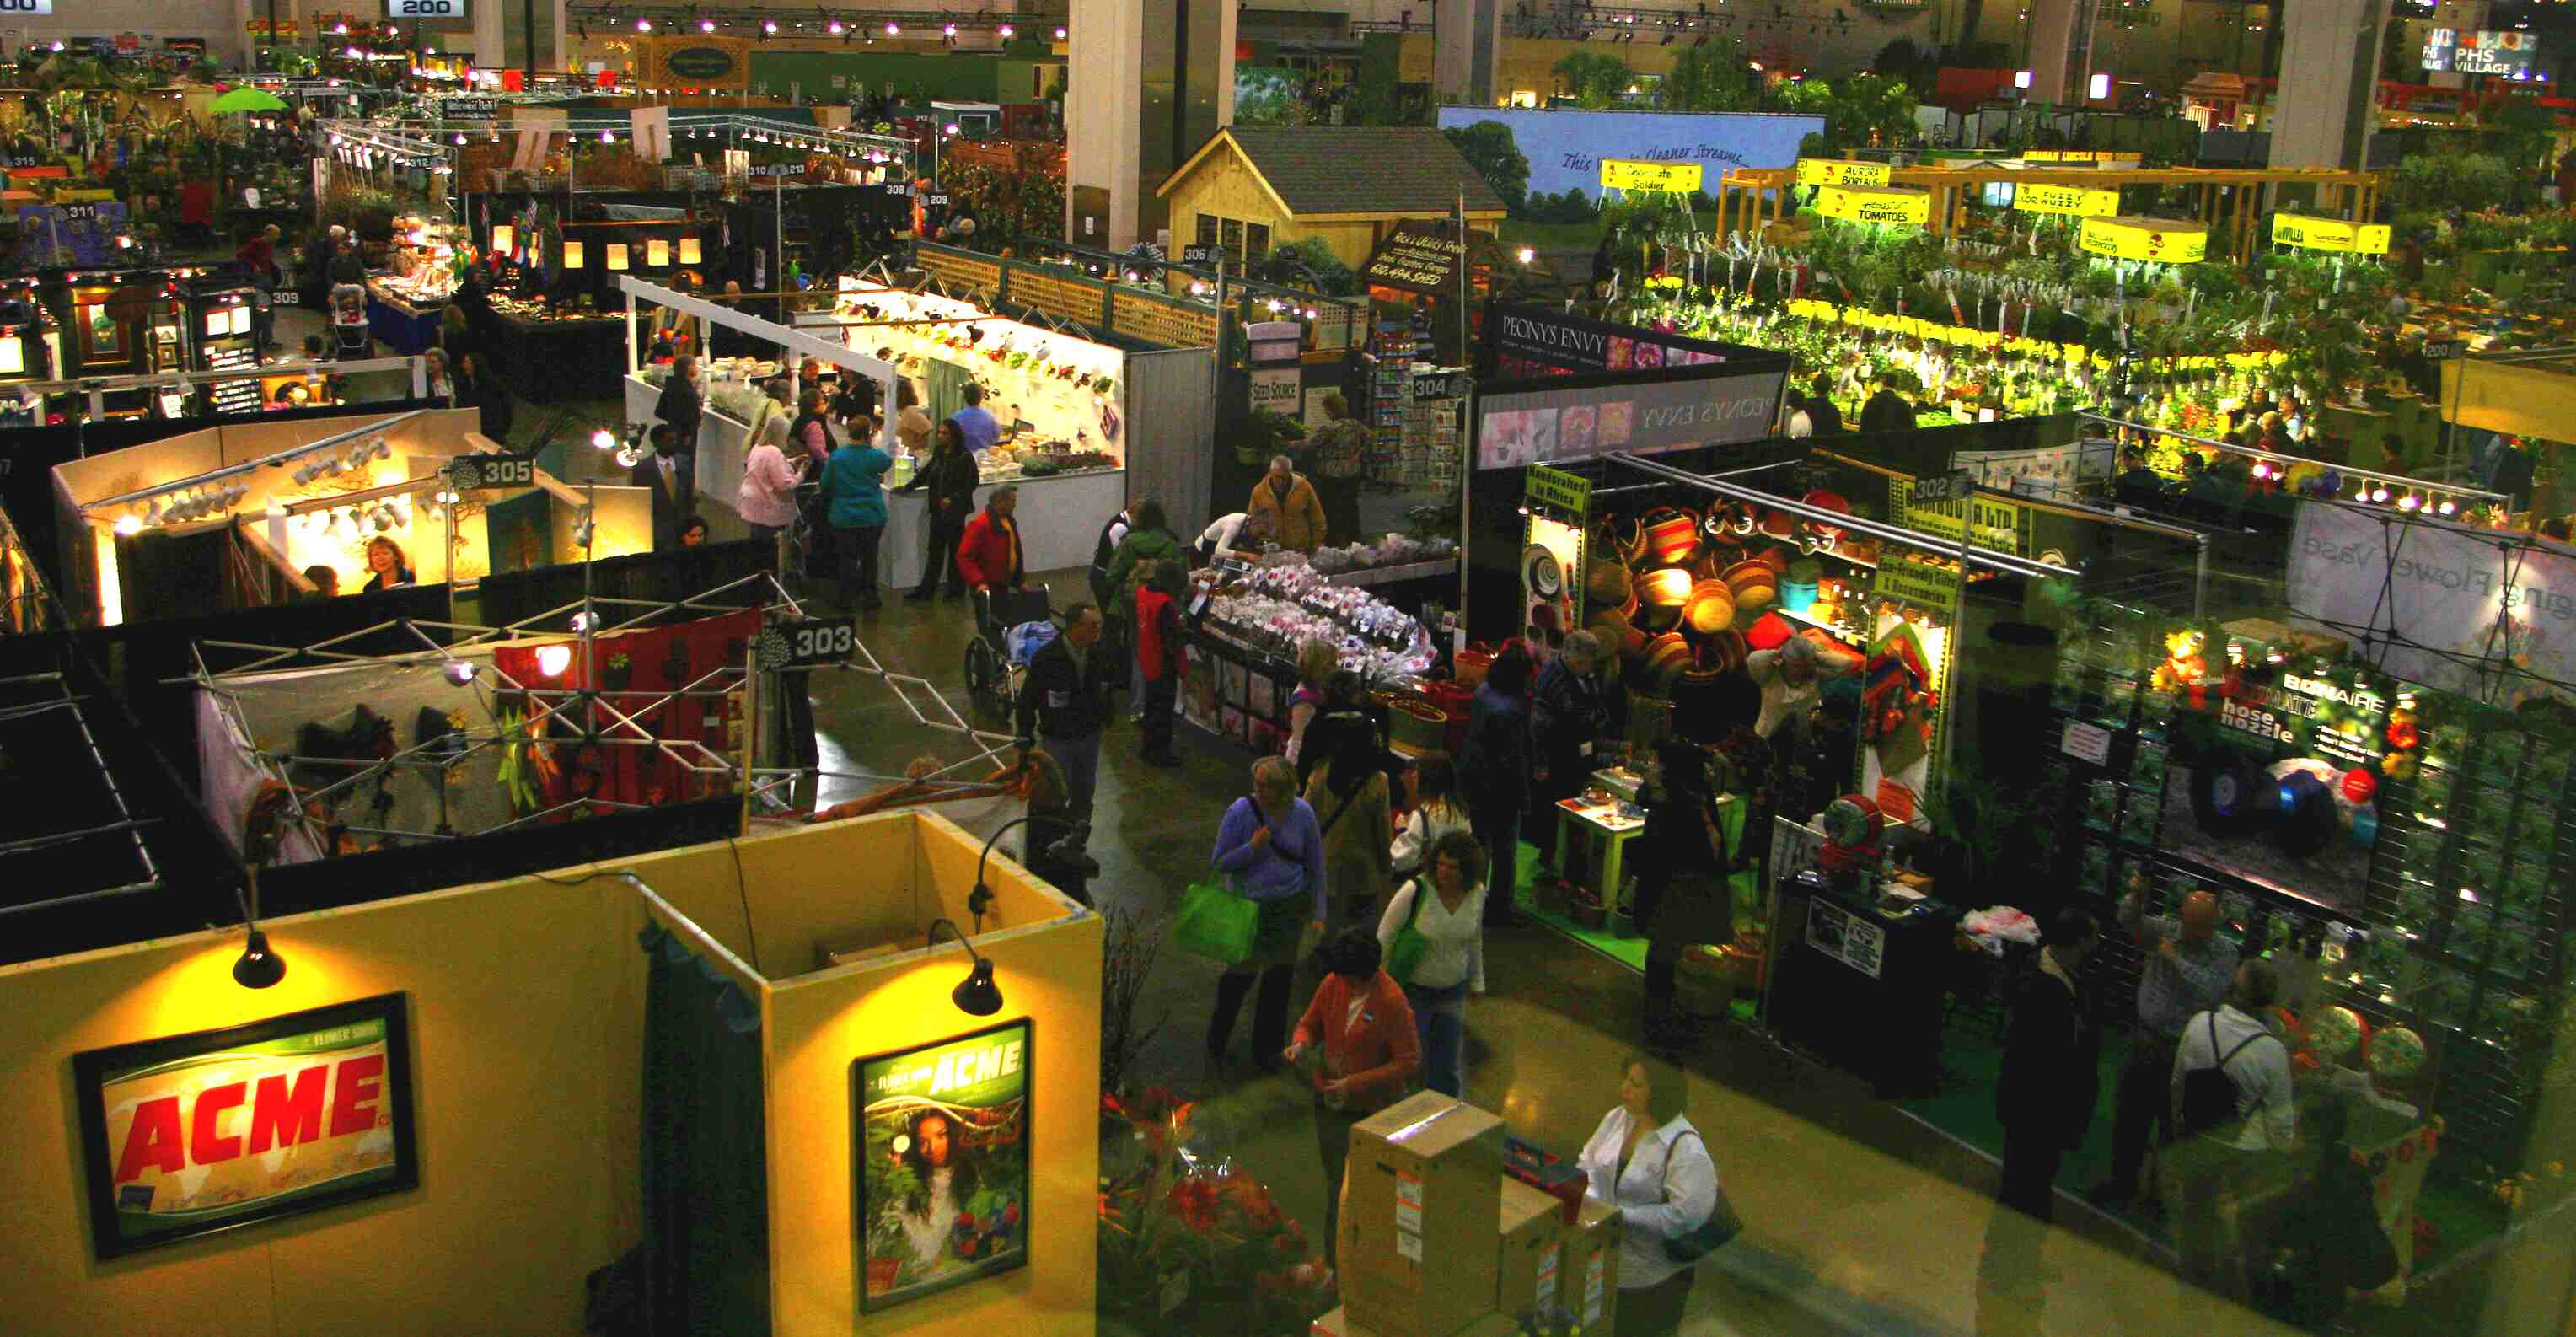 Marketplace | The Philadelphia Flower Show Blog Marketplace